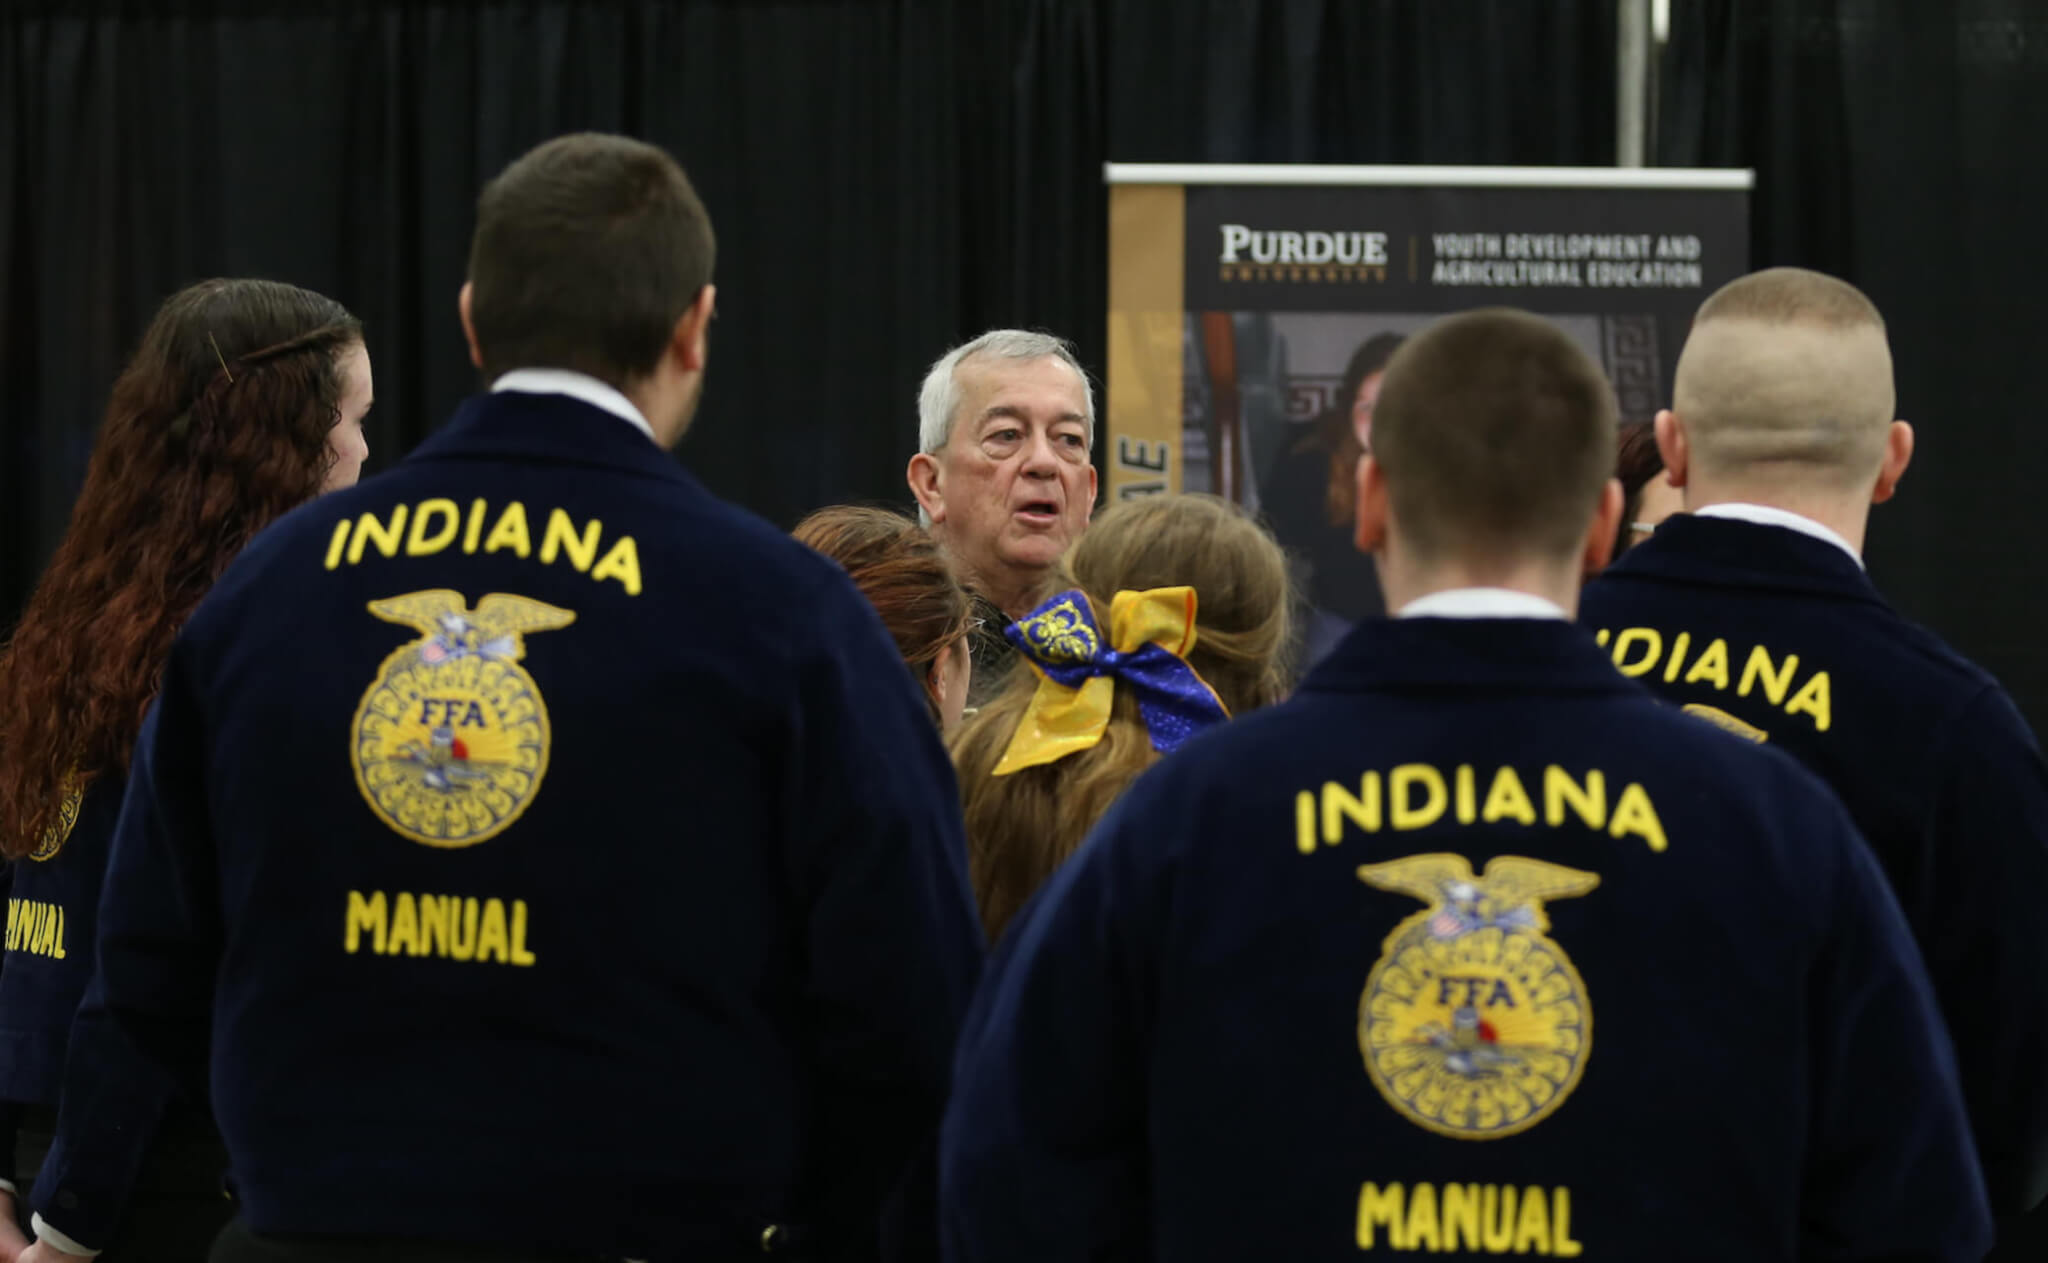 A group of FFA students in jackets learning more about Purdue